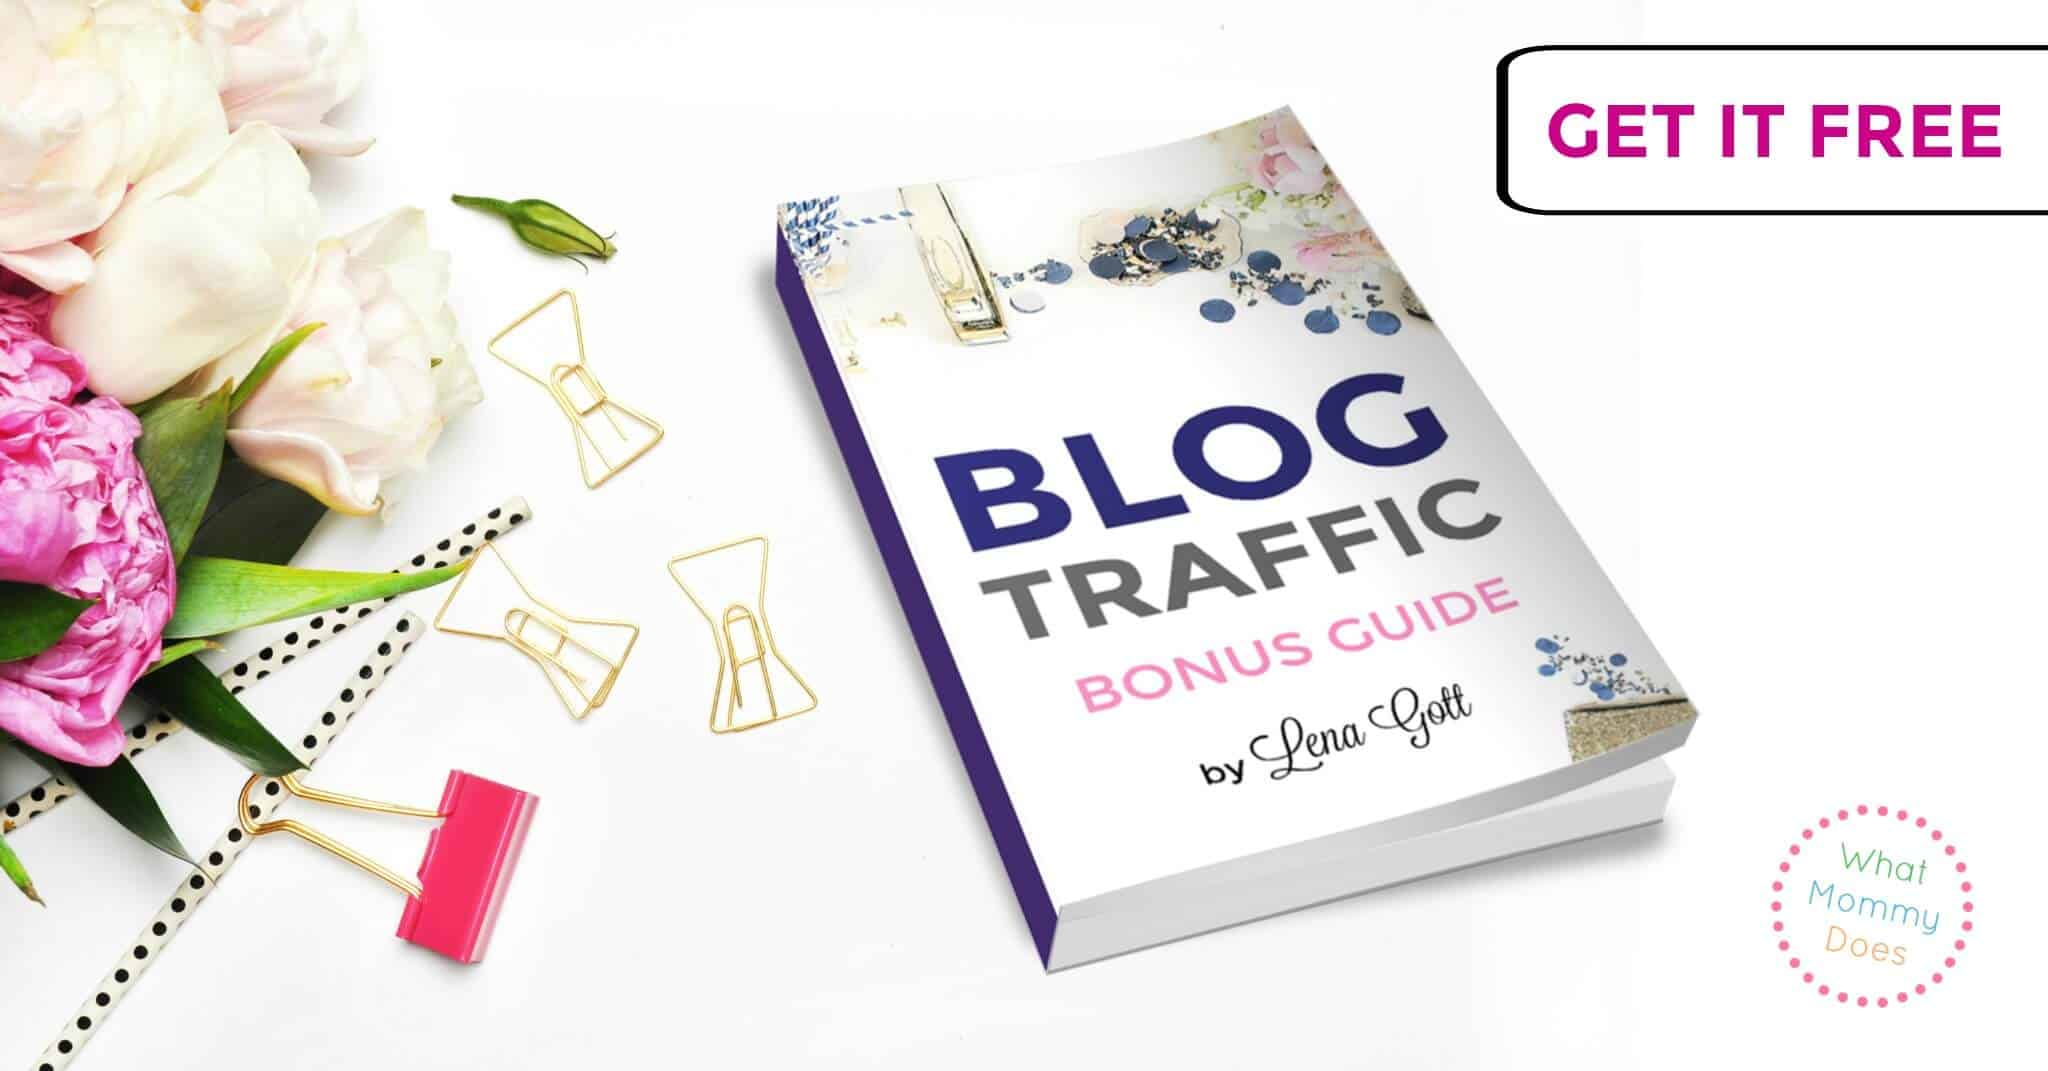 Blog Traffic Guide from Lena Gott